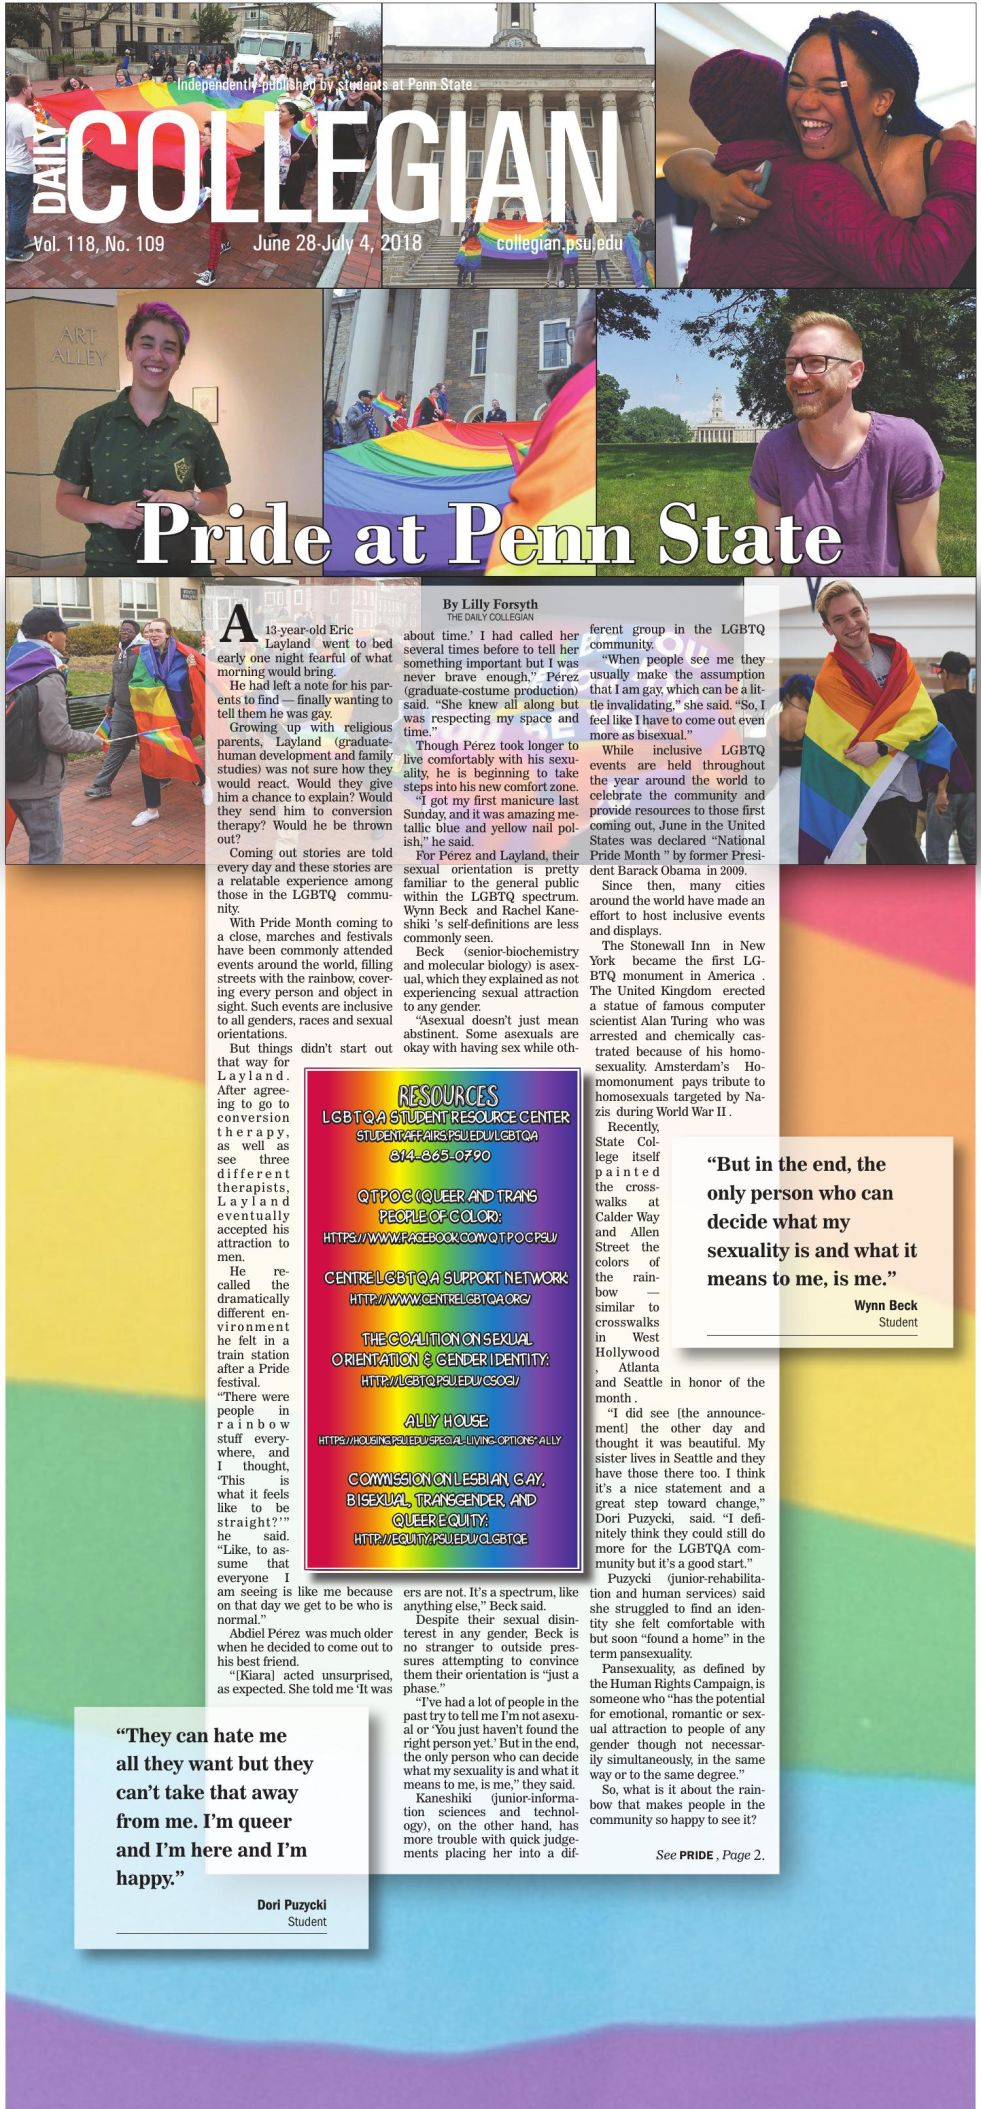 The Daily Collegian for June 28, 2018